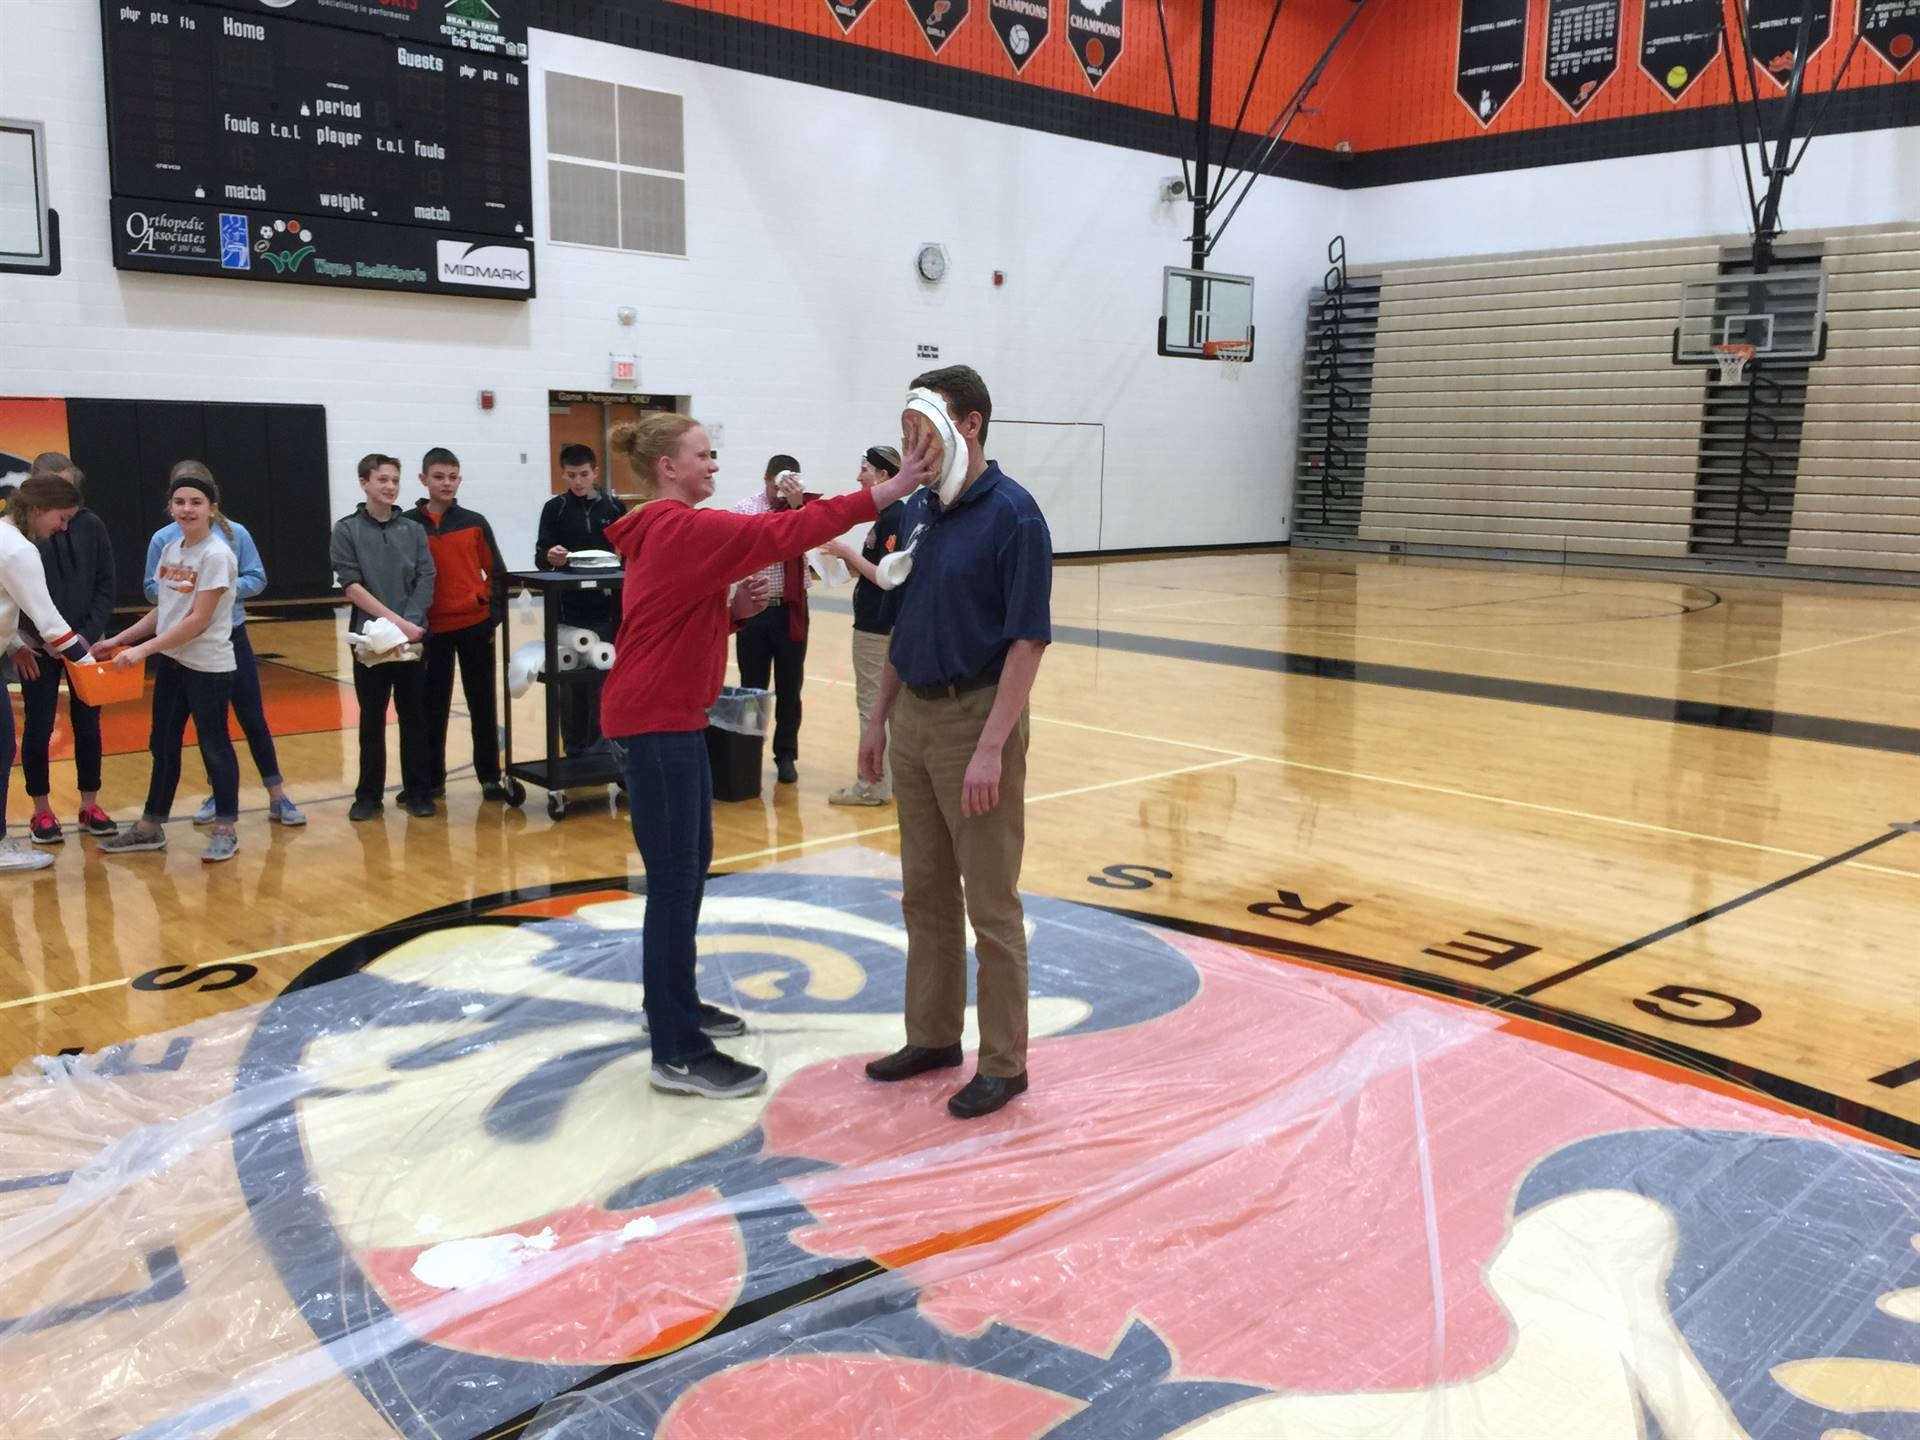 Mr. Keller gets a pie in the face